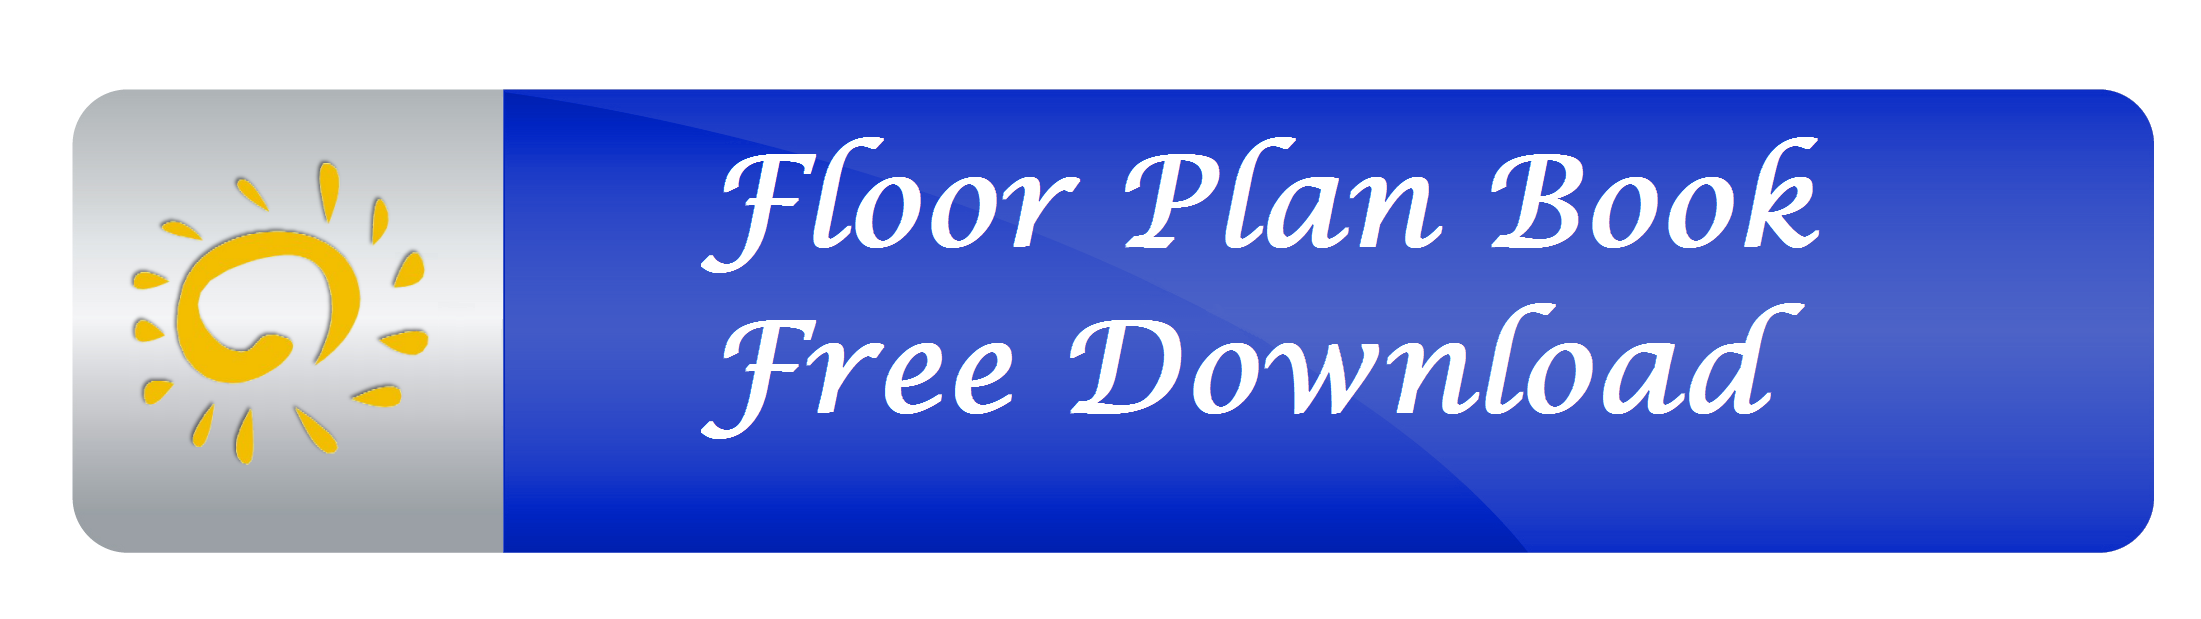 Floor Plan Book Free Download